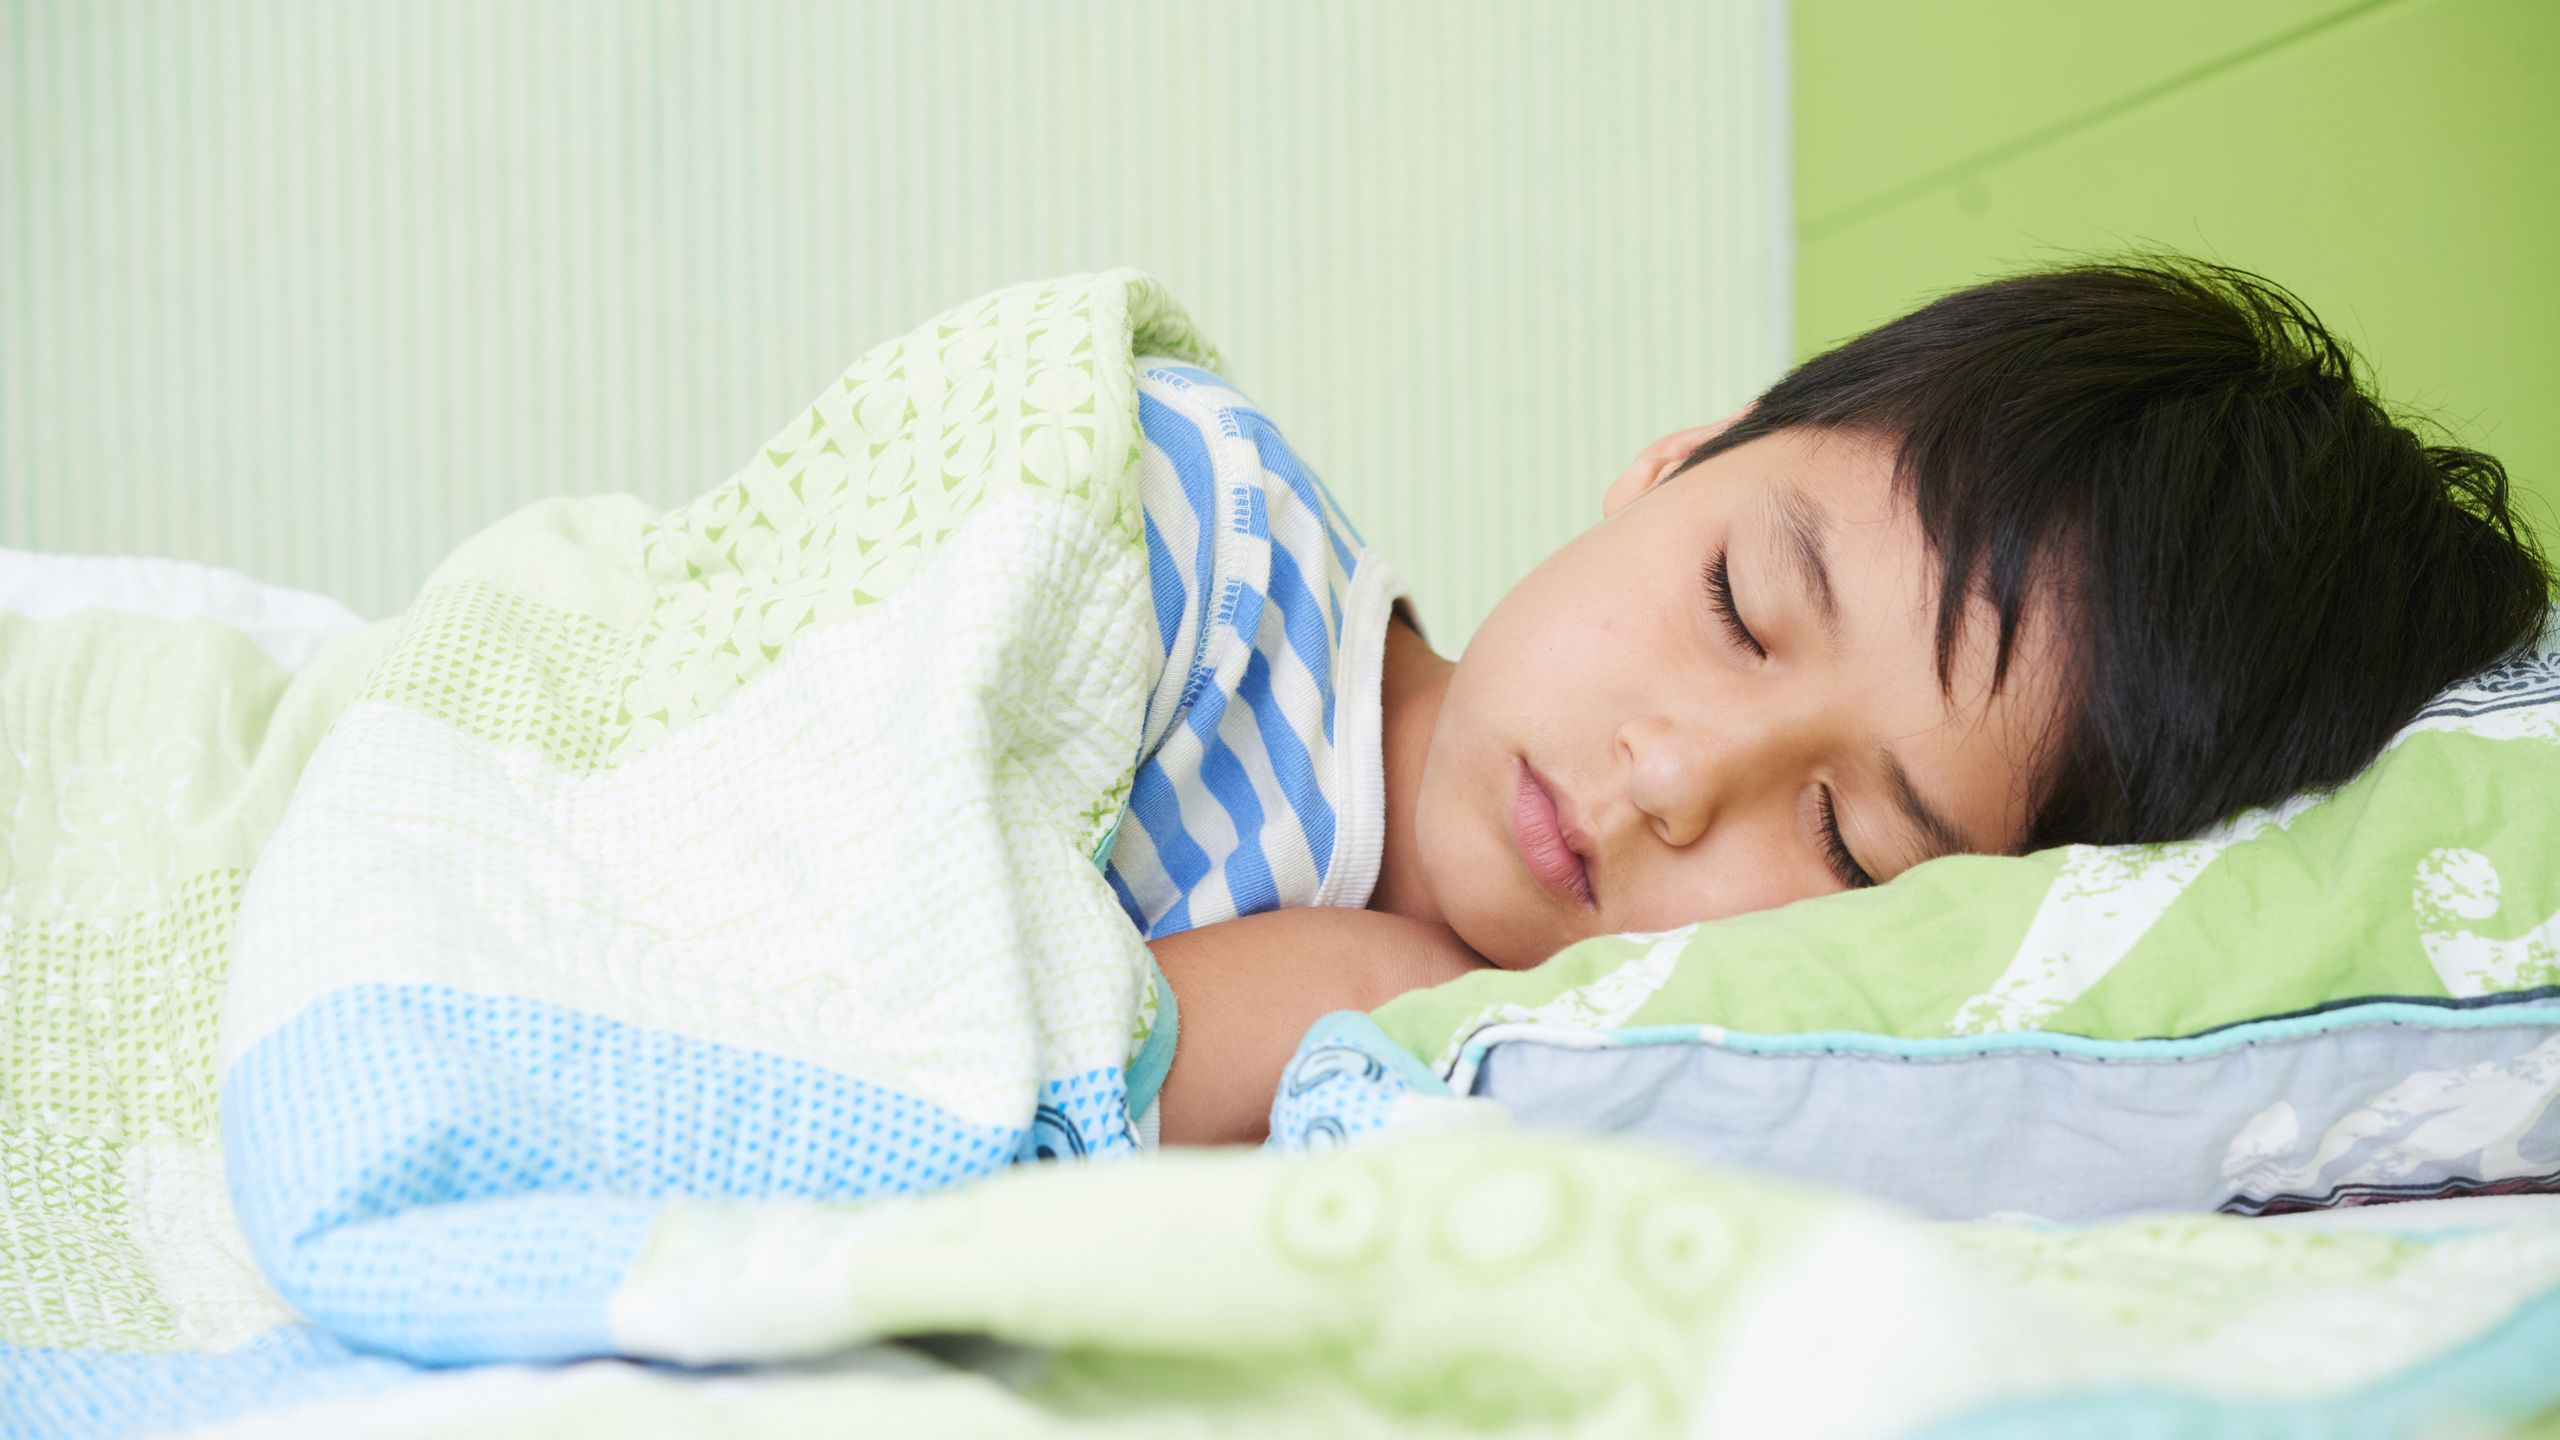 6 Ways to Stop Bedwetting